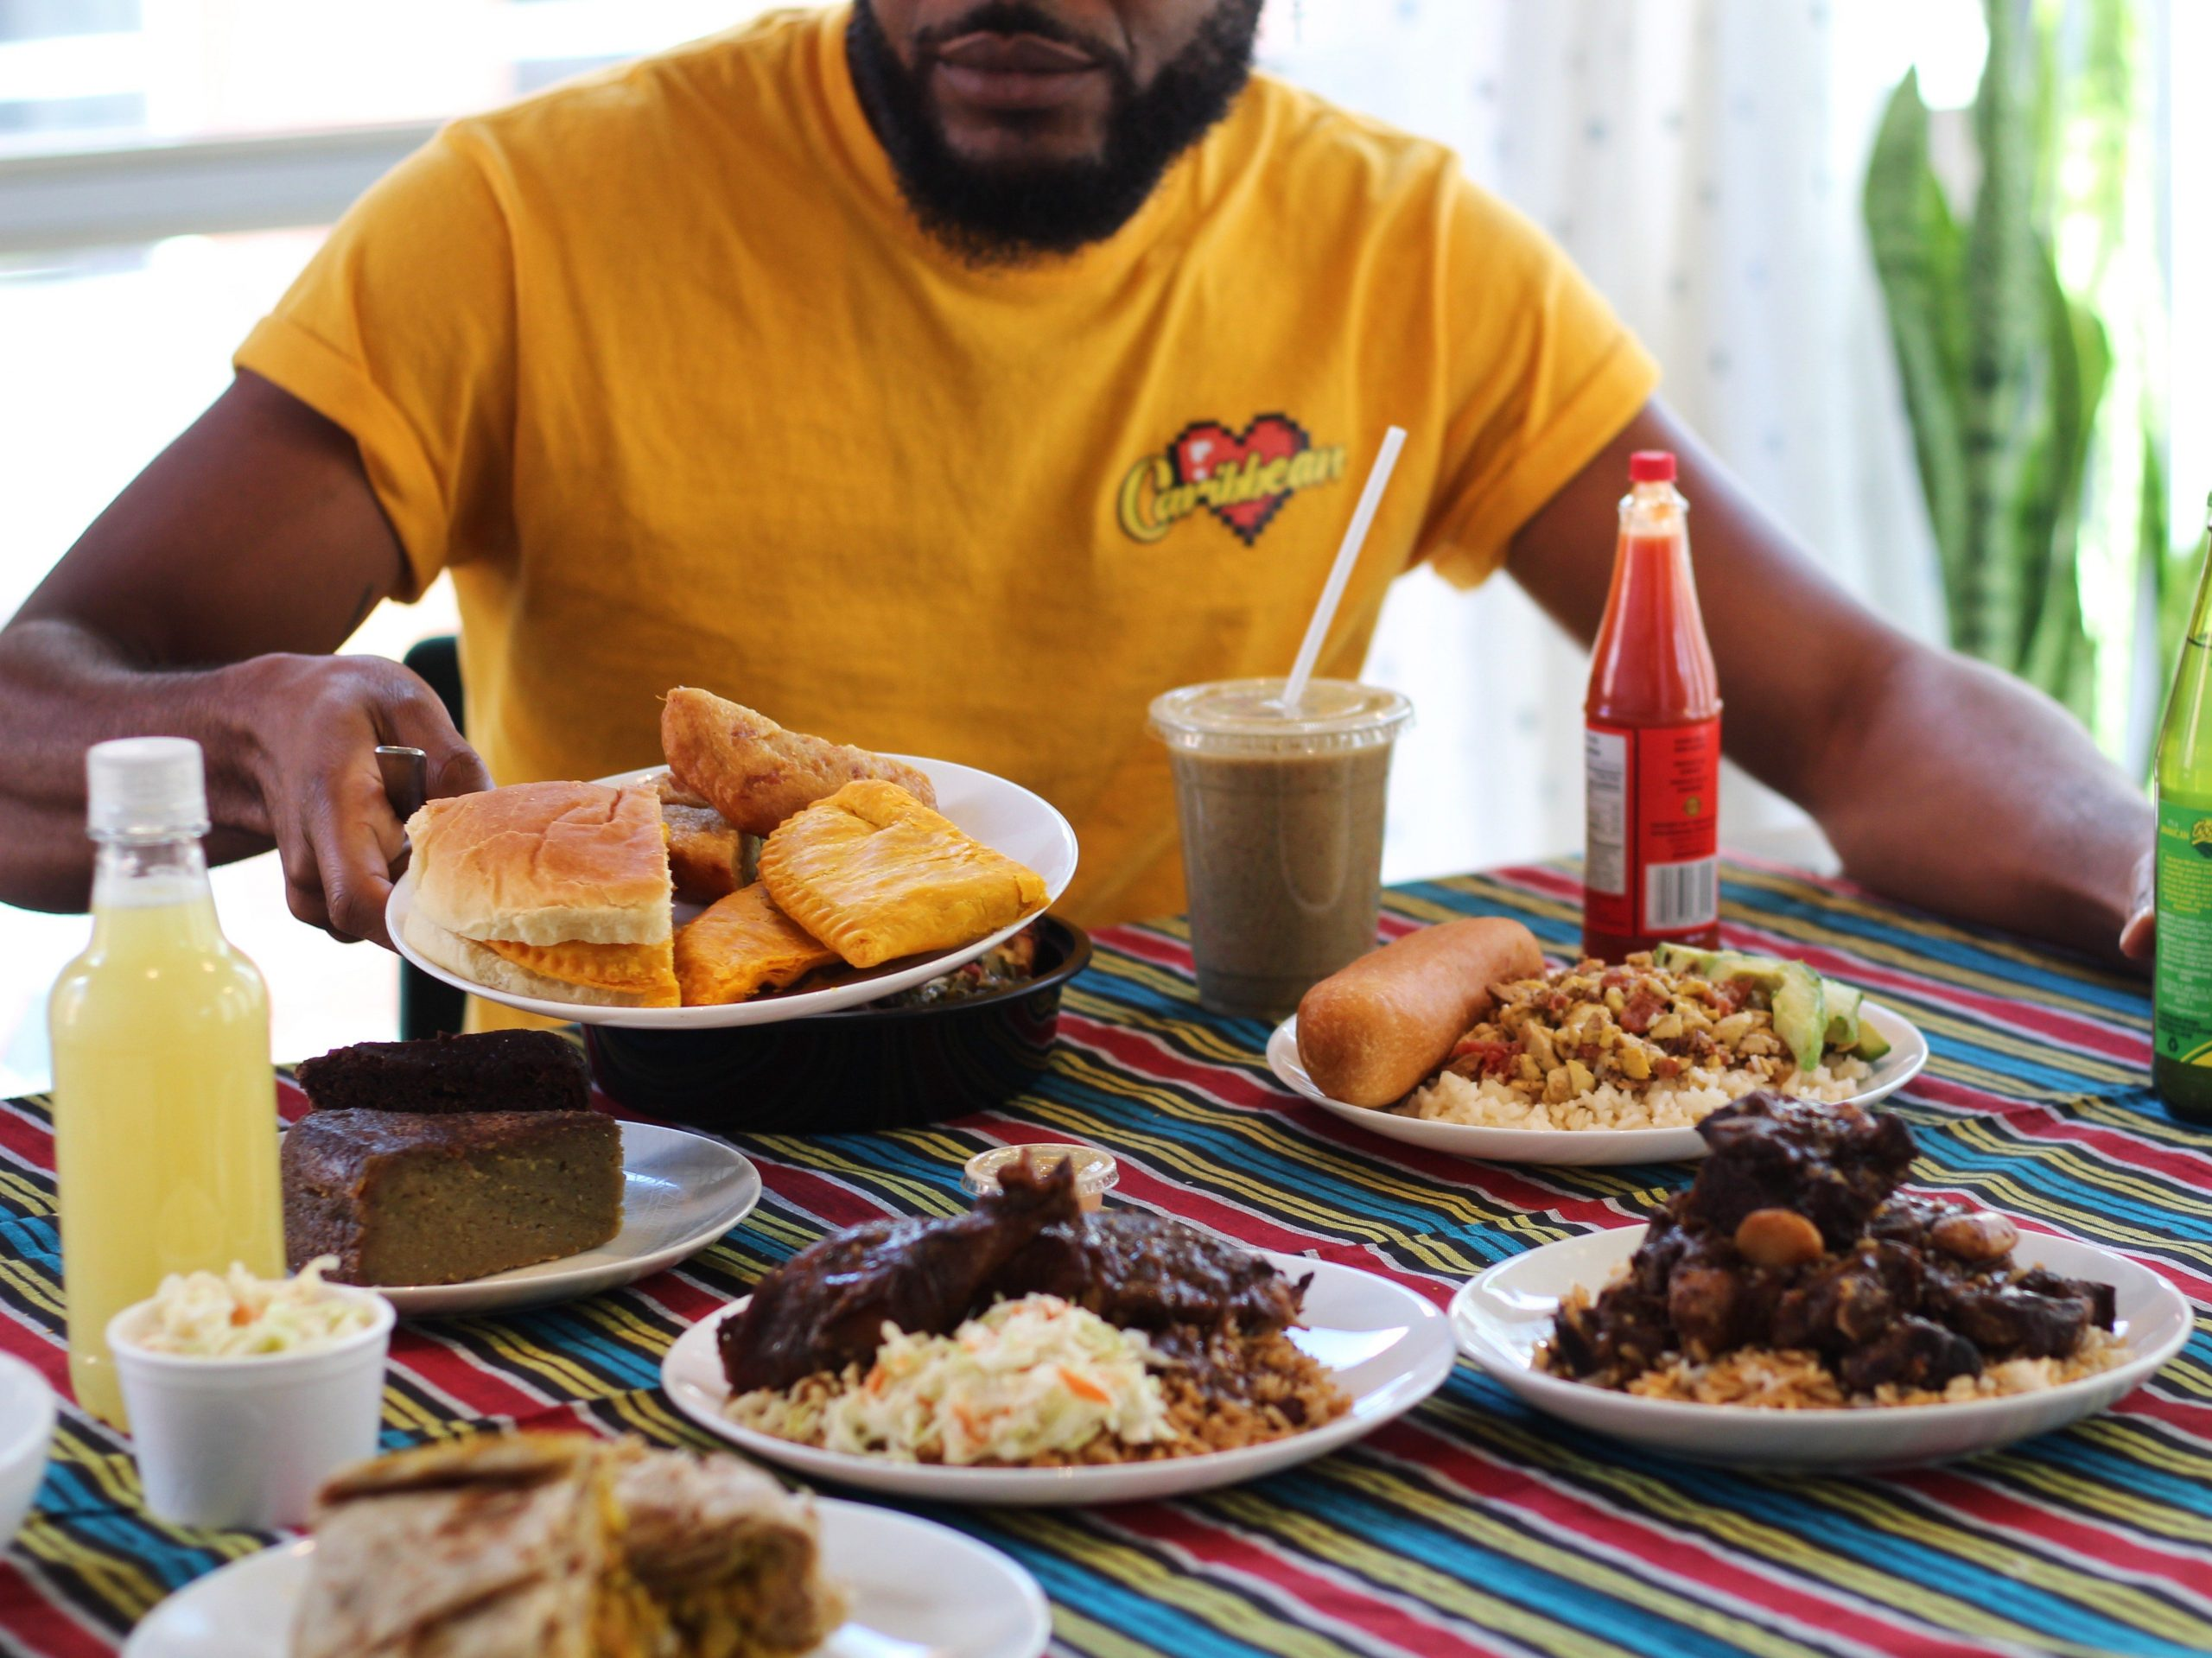 A spread of food from a Jamaican restaurant